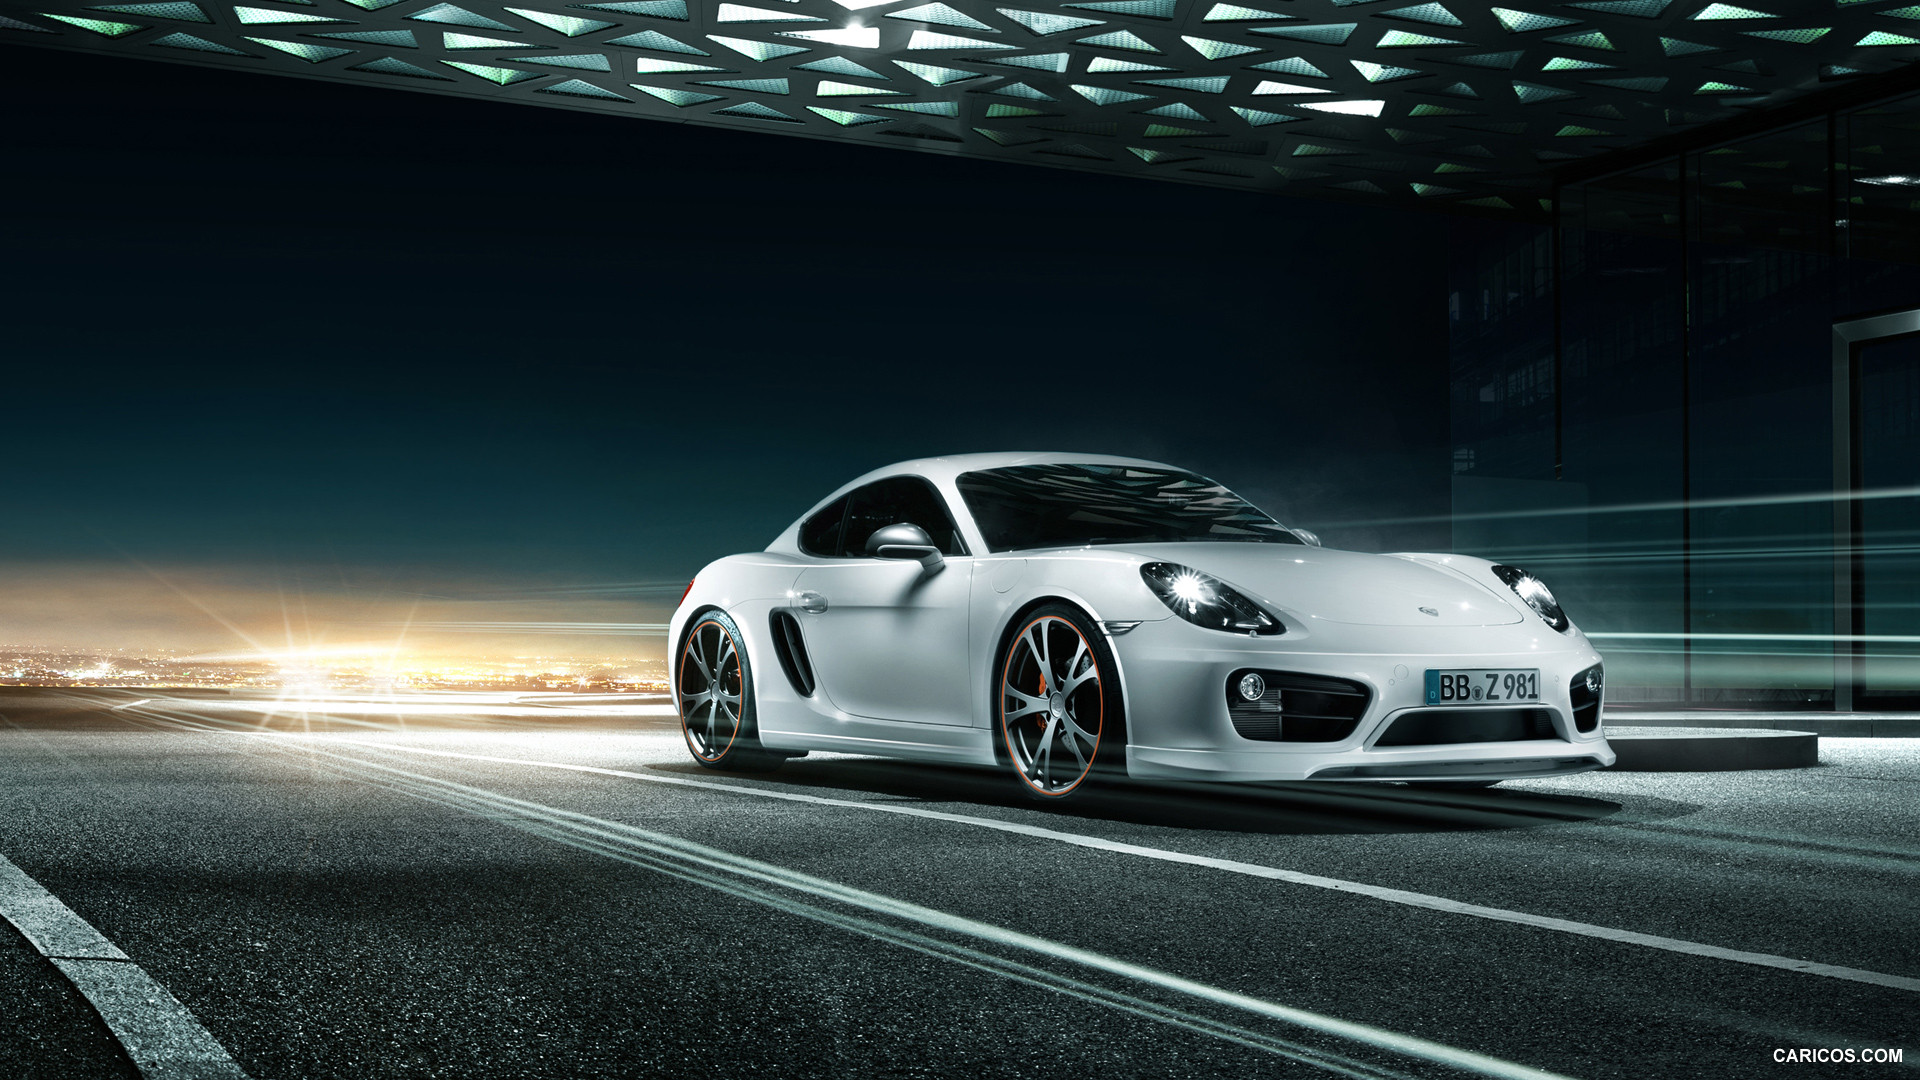 1920x1080 - Porsche Cayman Wallpapers 25